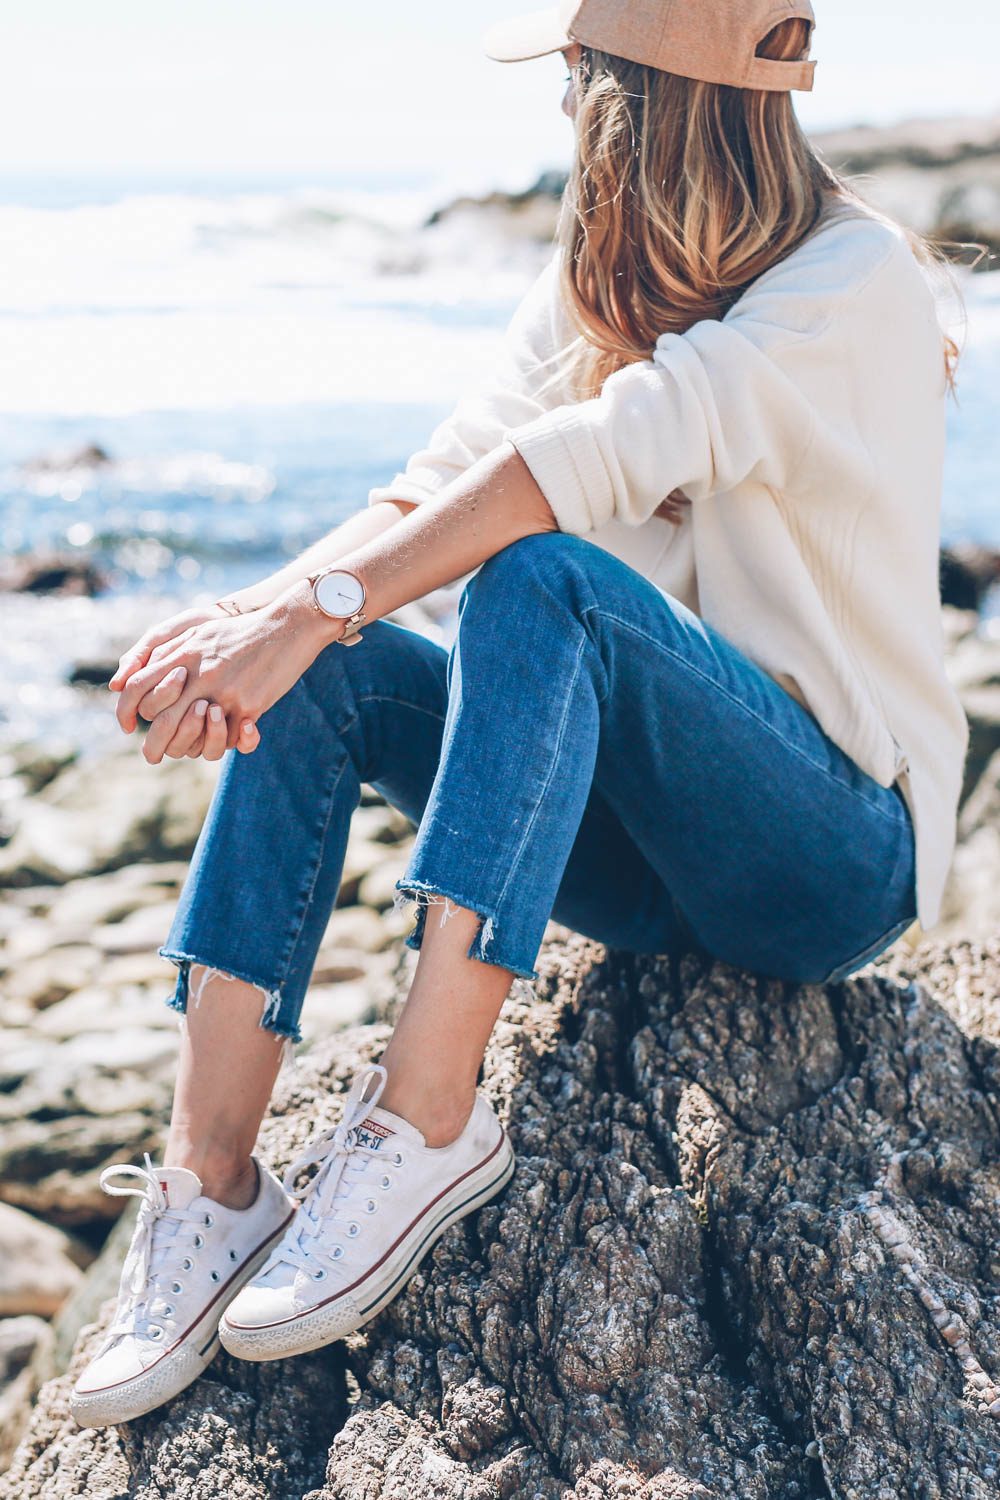 Jess Ann Kirby in converse sneakers and Paige denim in Newport Rhode Island shares the past four years as a blogger